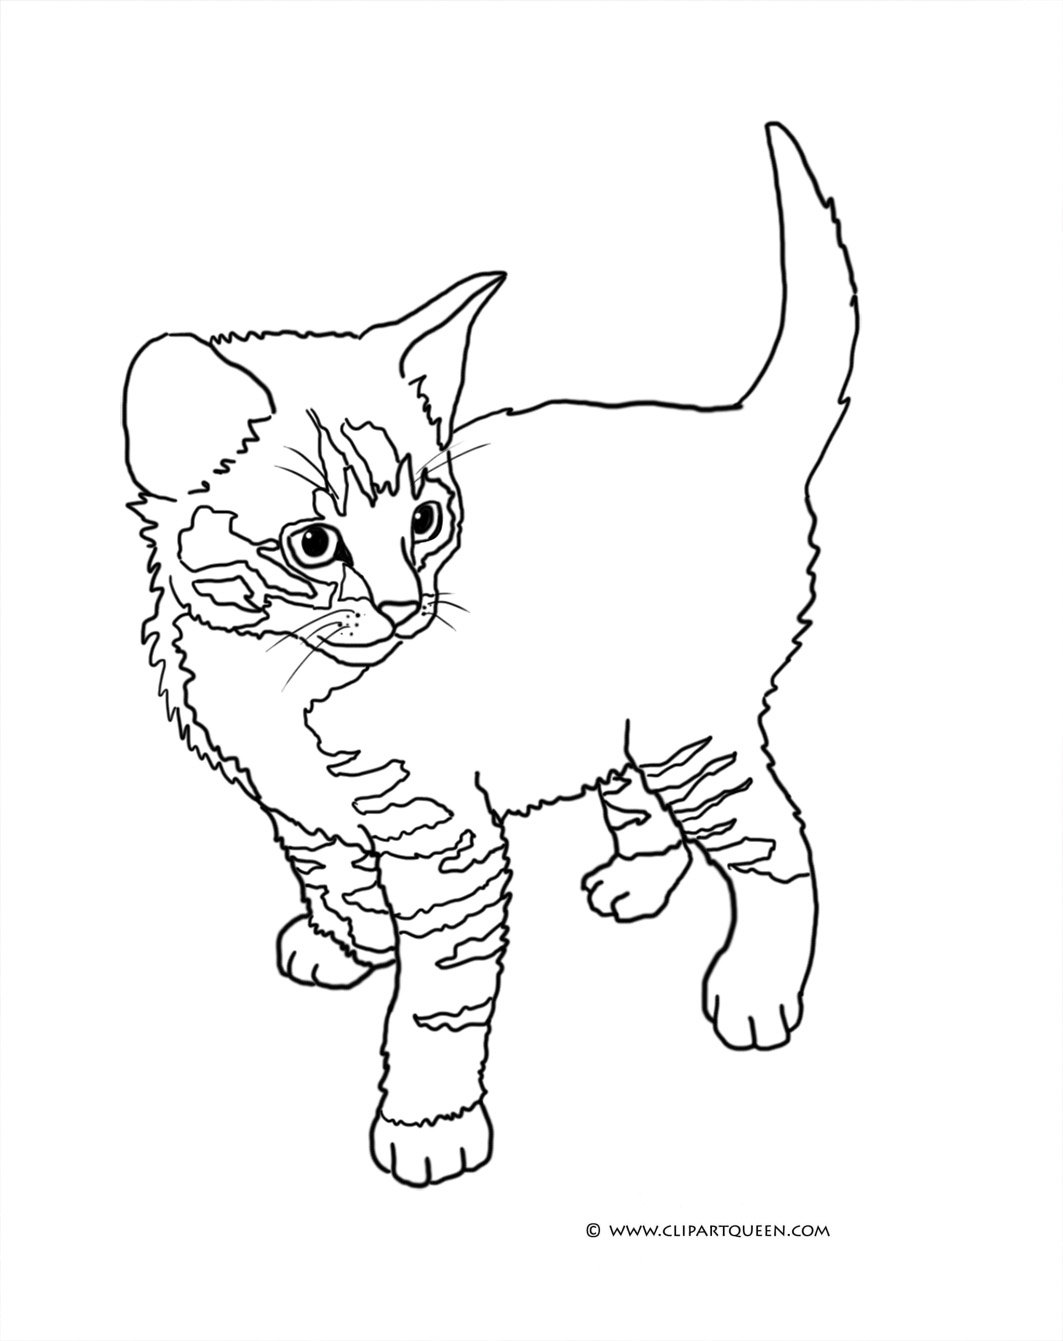 kitten coloring pictures printable free printable cat coloring pages for kids pictures kitten printable coloring